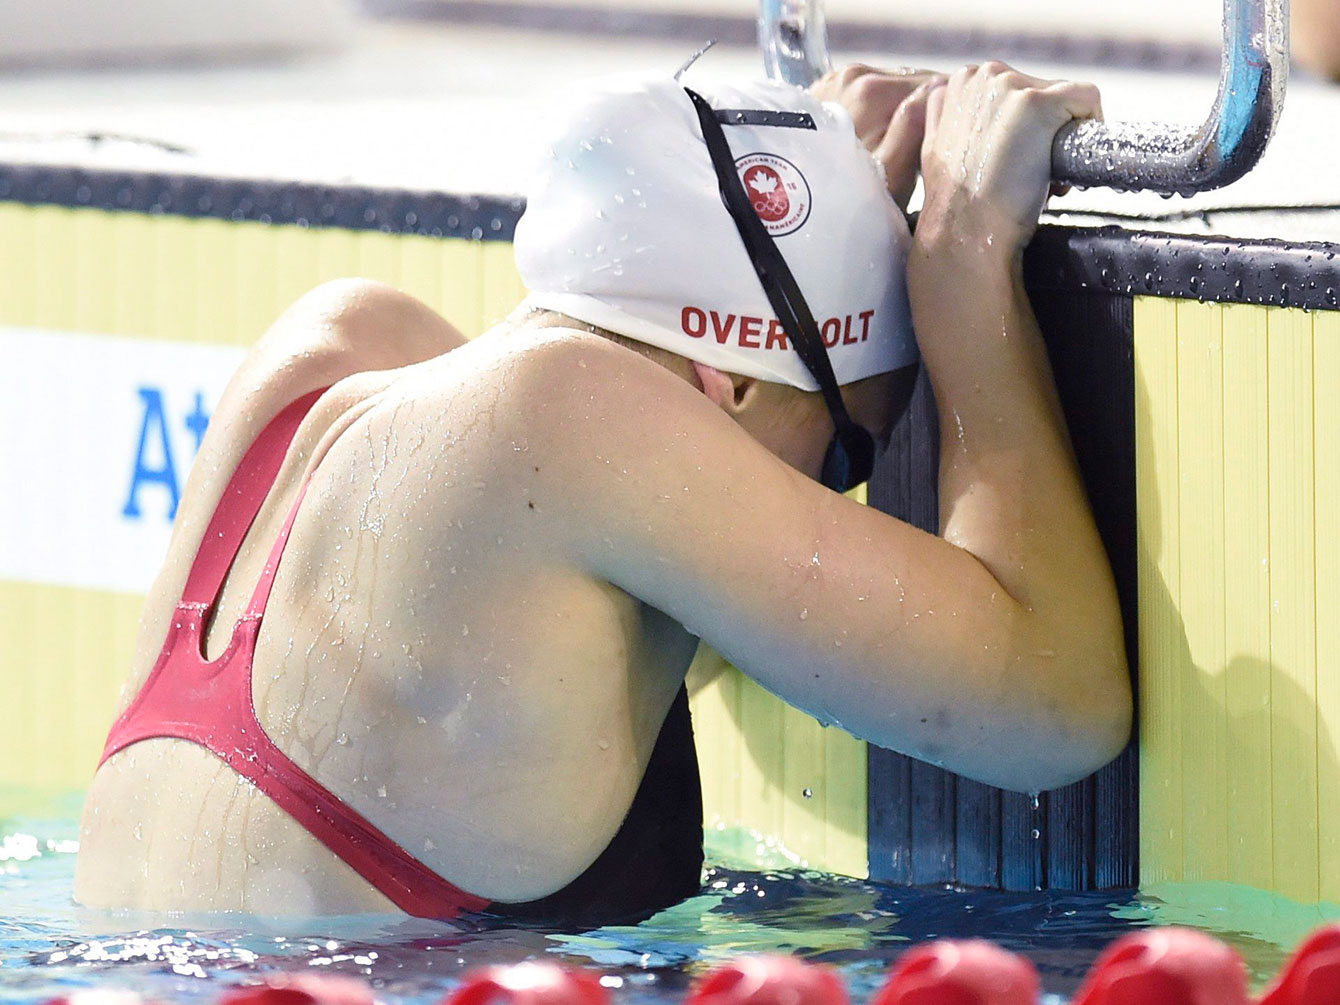 Emily Overholt reacts after winning the women's 400 IM. She was later disqualified.